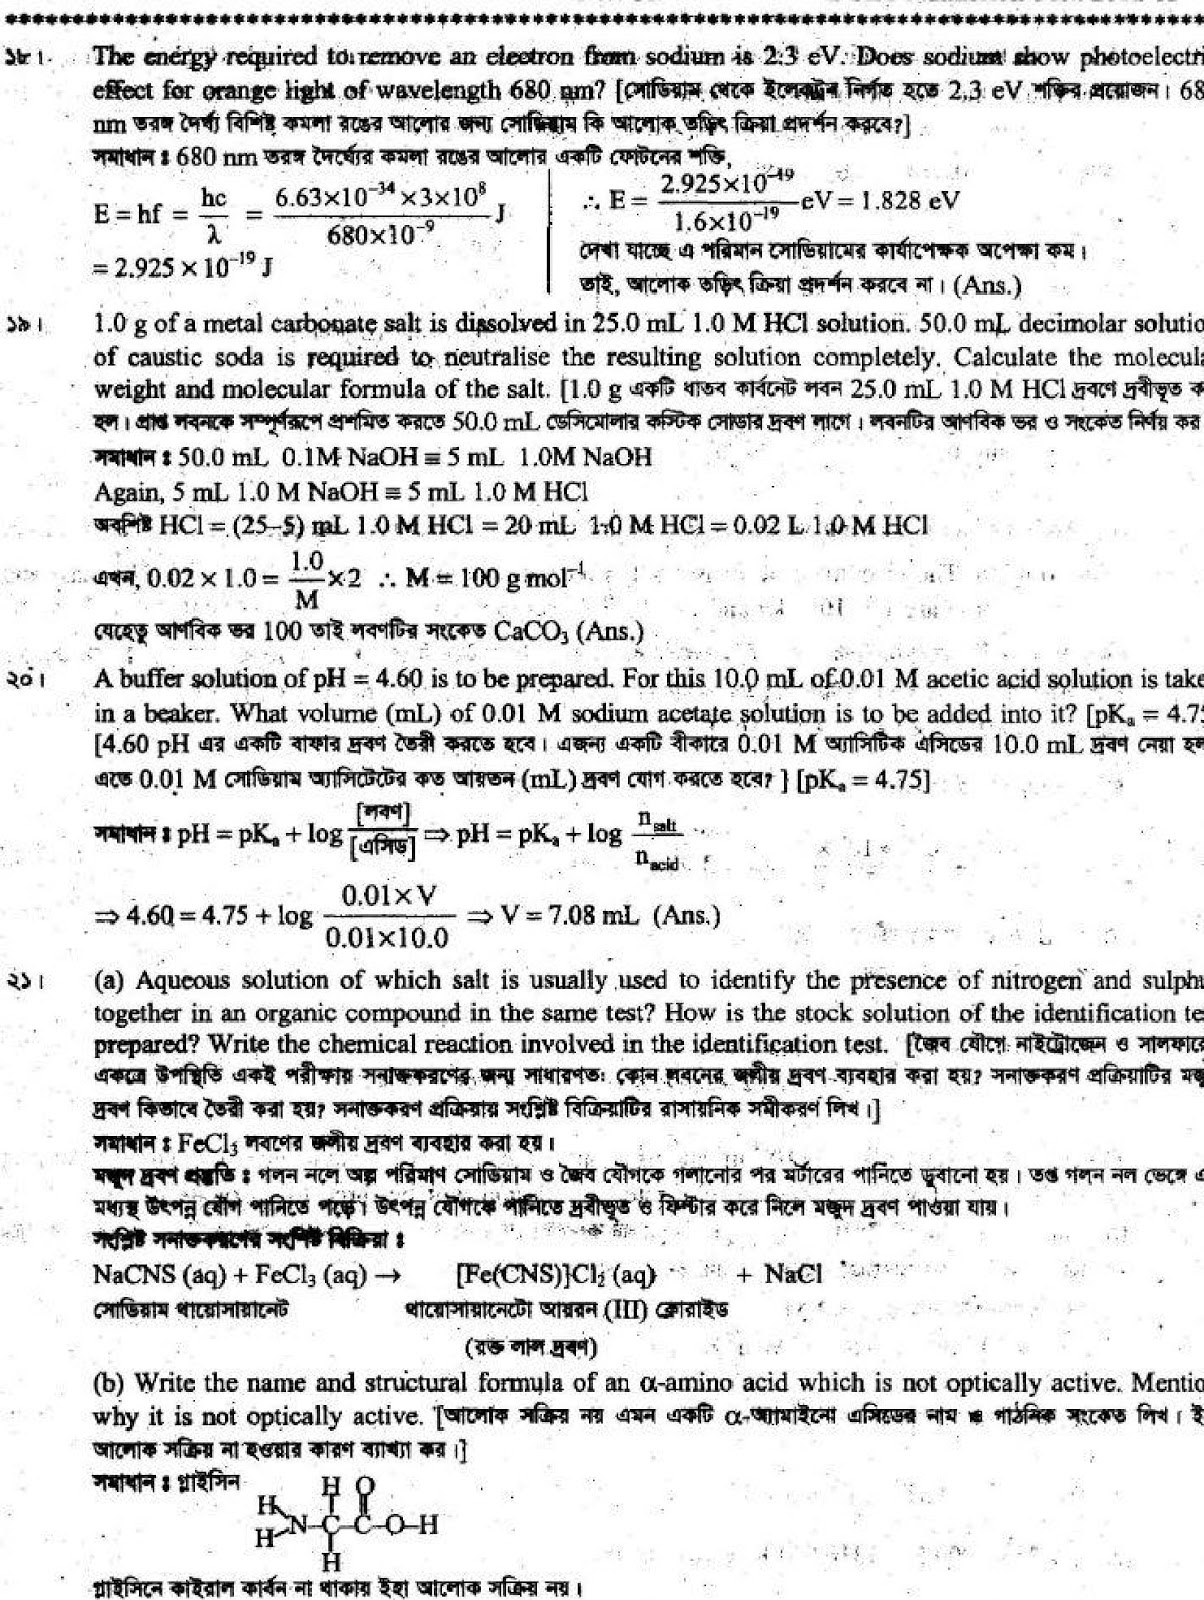 questionnaire for university education in bangladesh Factors affecting students' performance mohammad ali jinnah university, islamabad data collected was primary through a well-defined questionnaire.